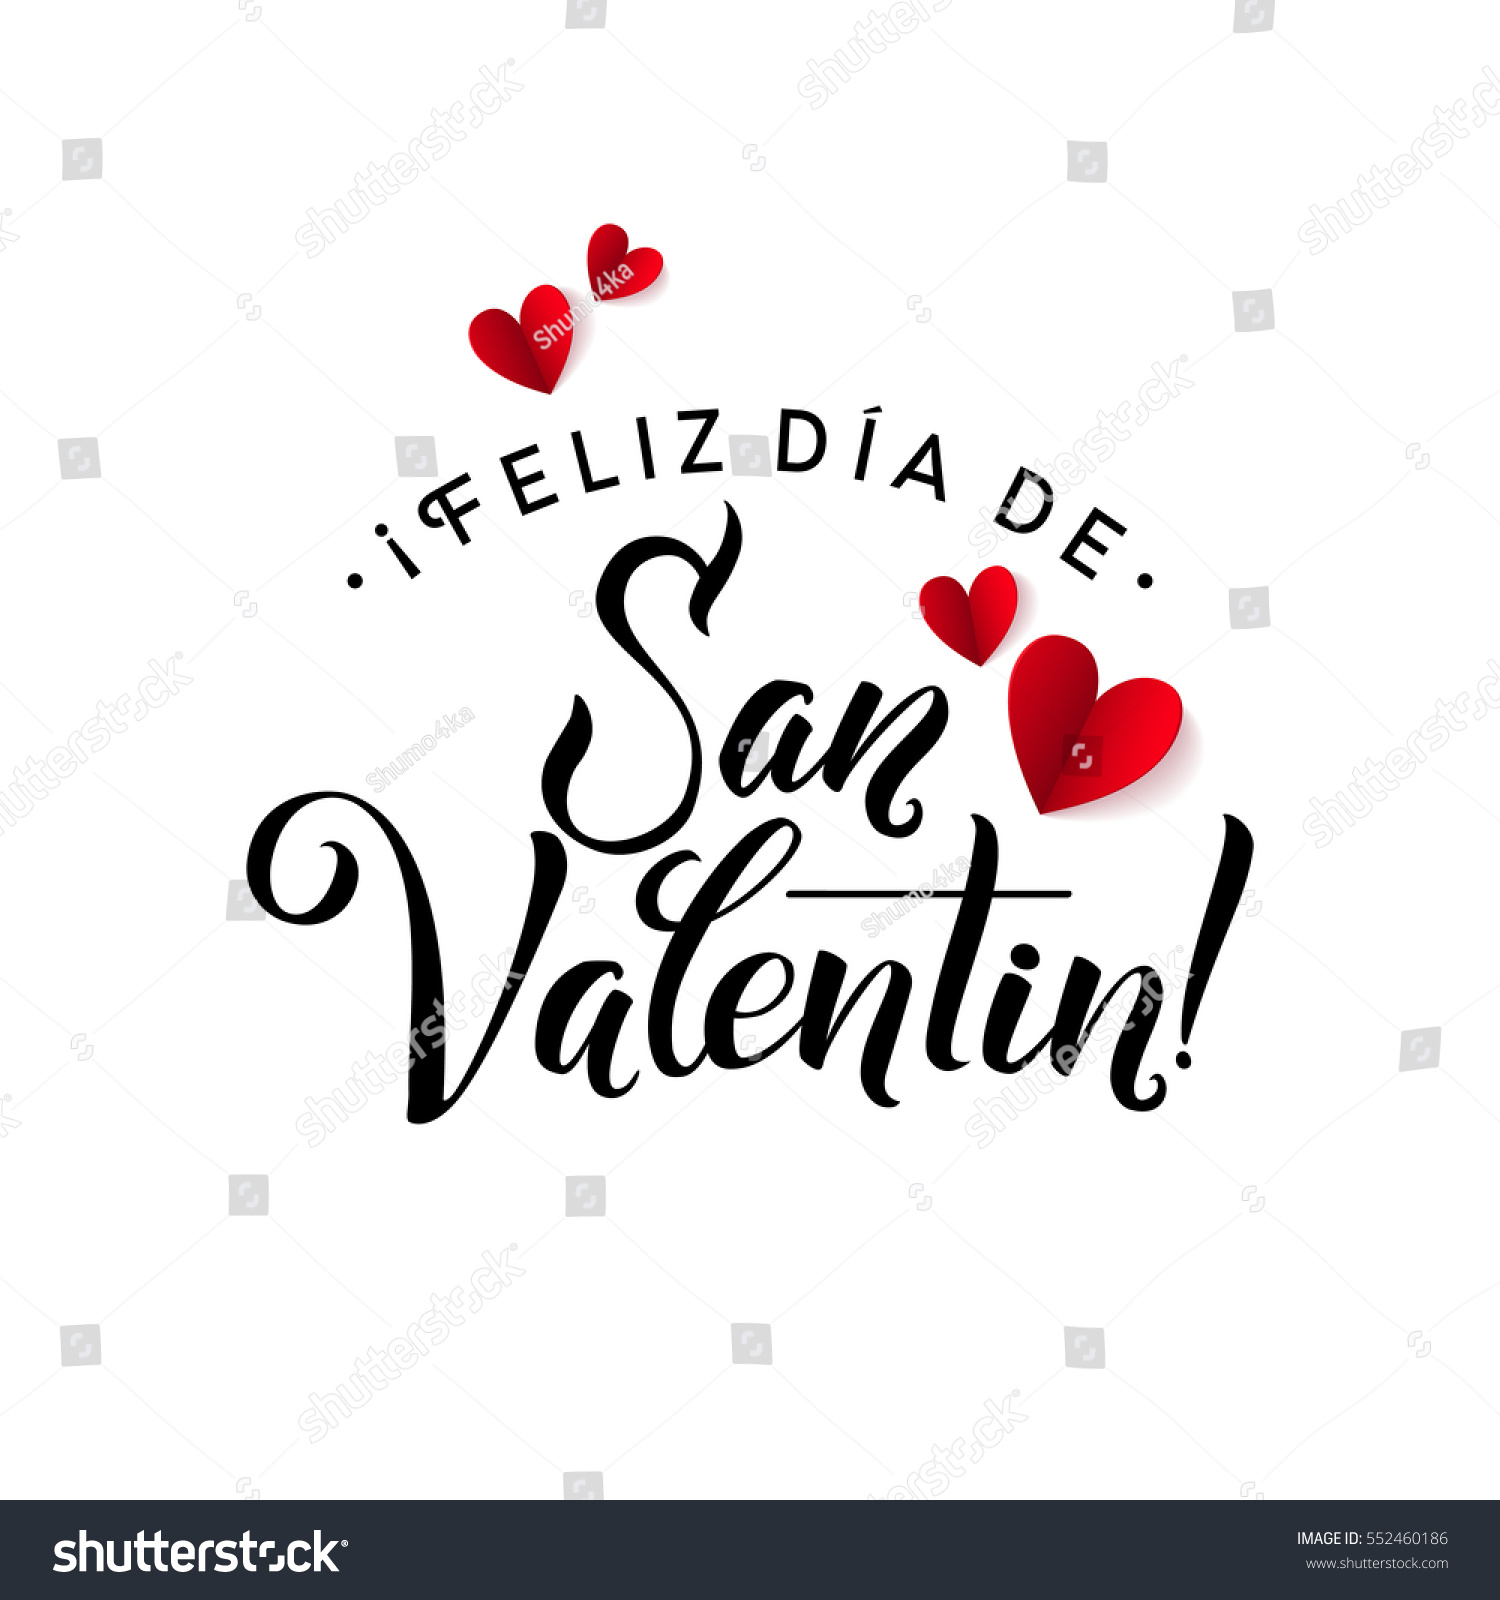 Happy Valentines Day Card Spanish Calligraphic Stock Vector Royalty